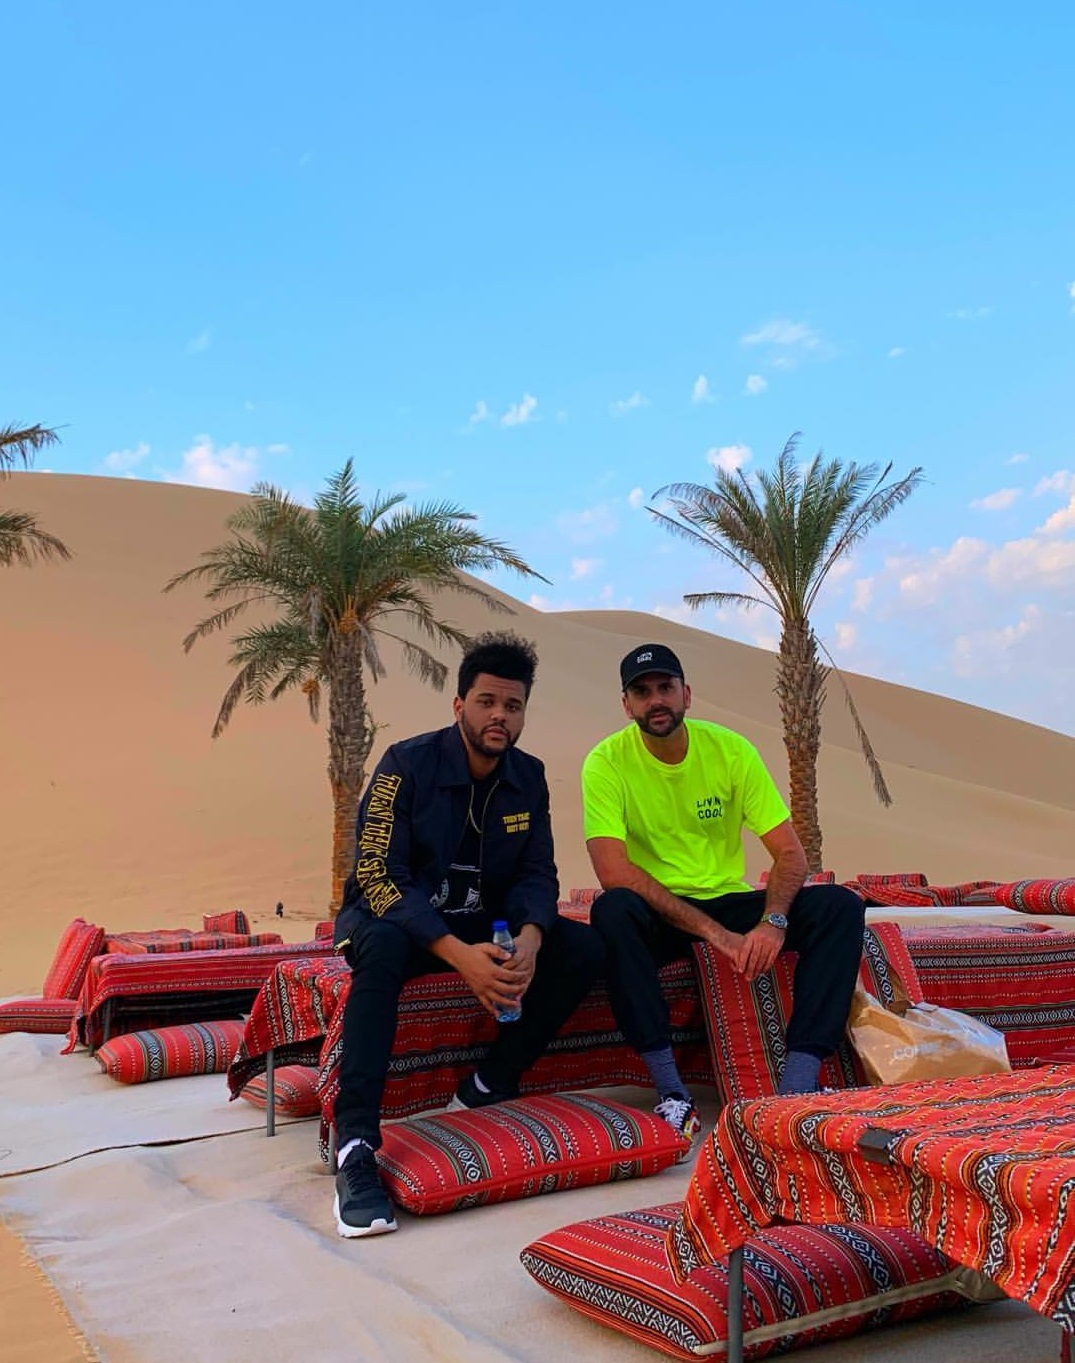 Bella Hadid and The Weeknd in Abu Dhabi 1